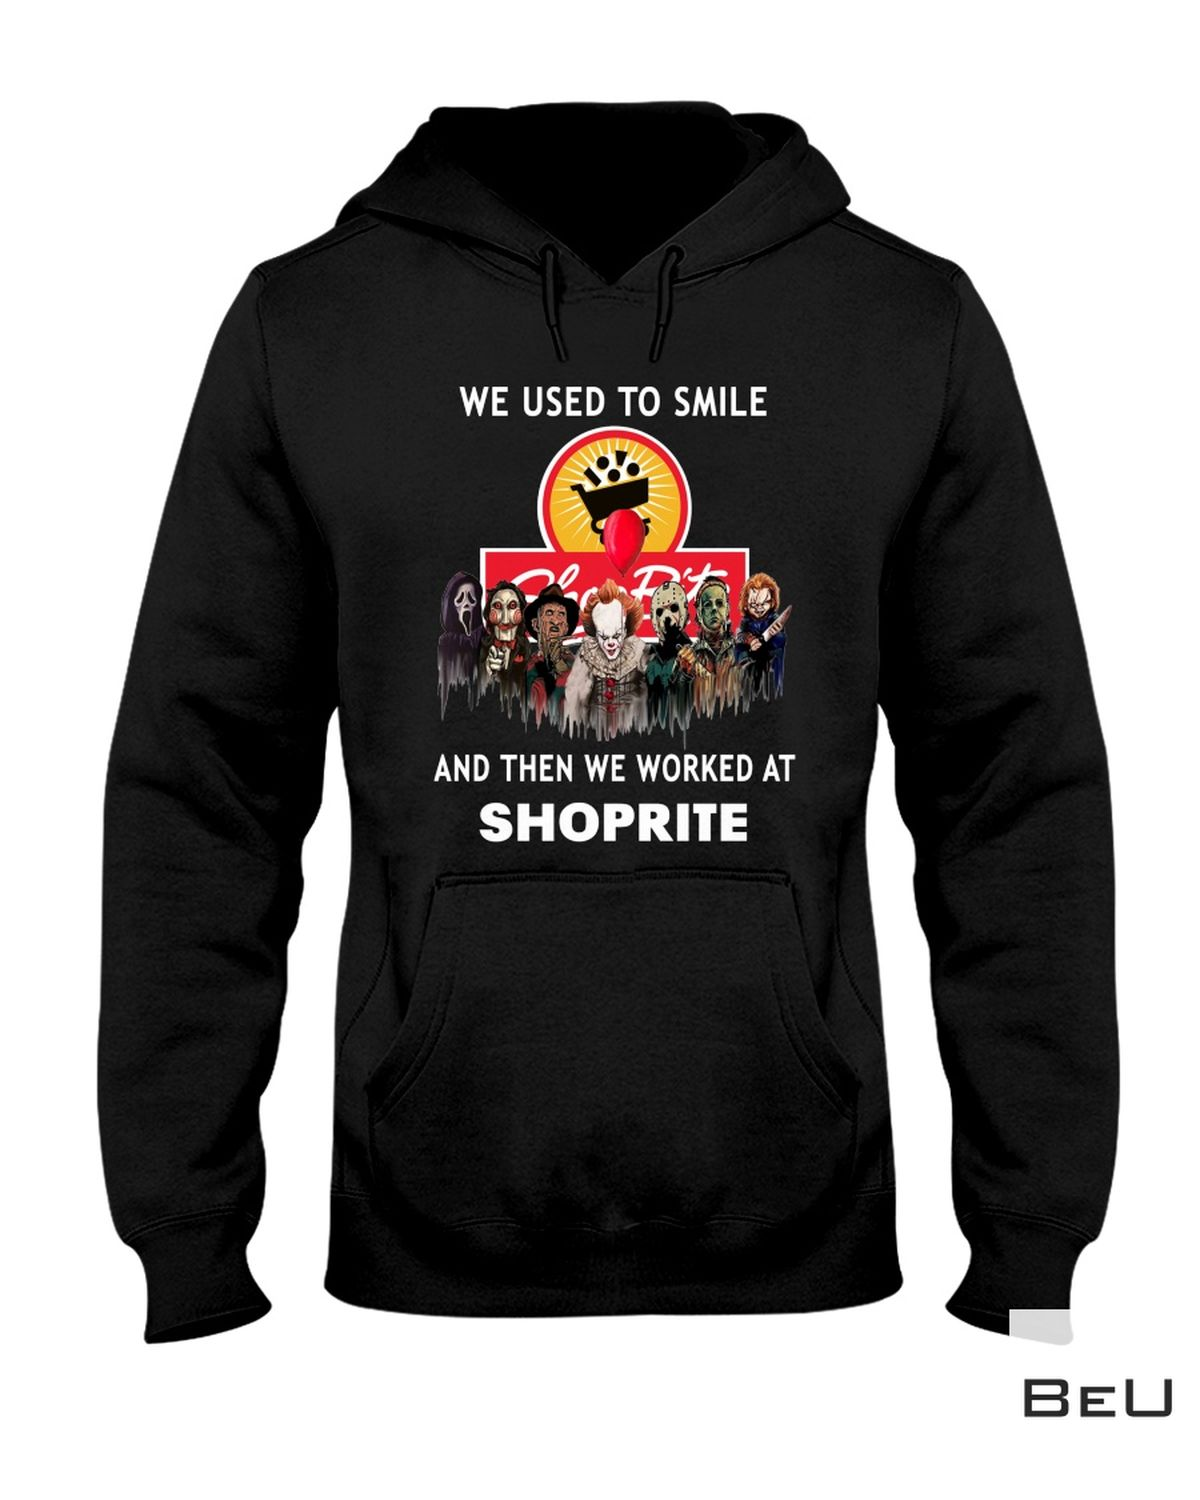 Sale Off We Used To Smile And Then We Work At Shoprite Horror Movie Characters Shirt, hoodie, tank top